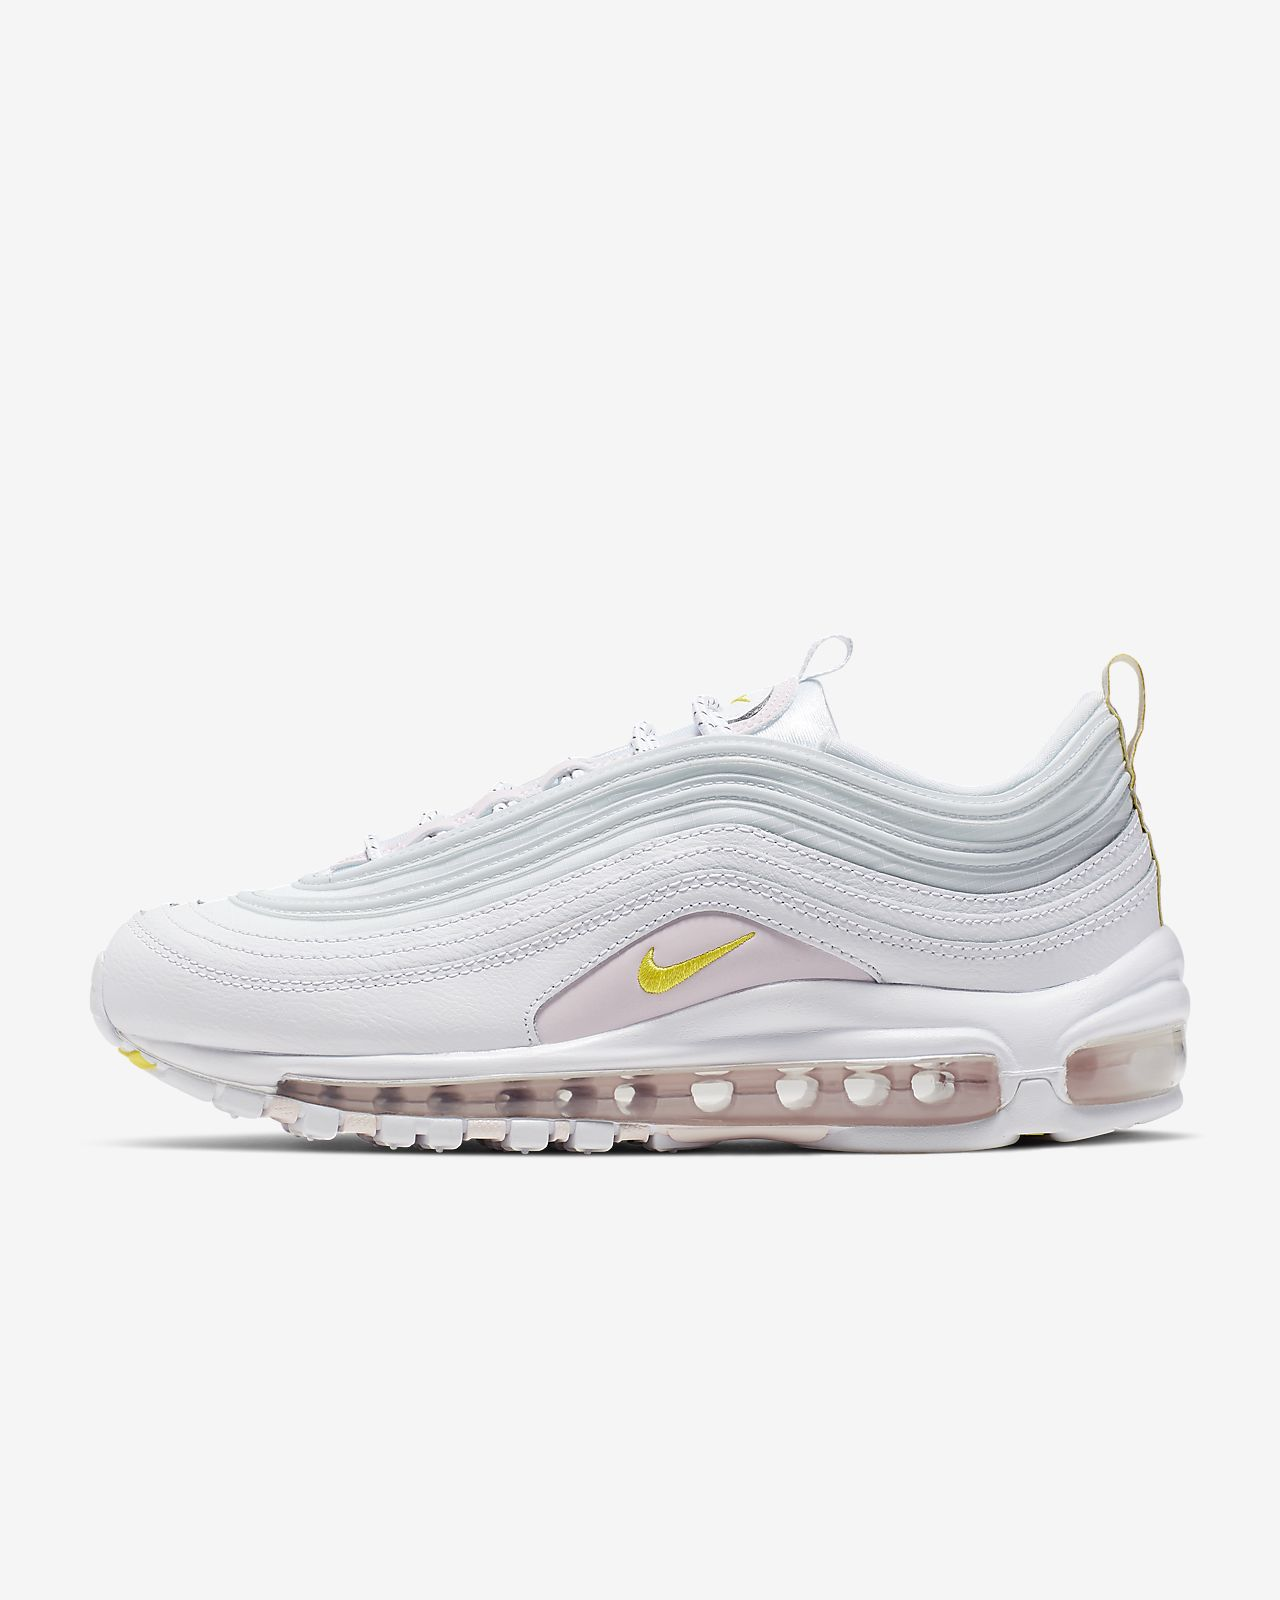 Nike Air Max 97 SE Damenschuh